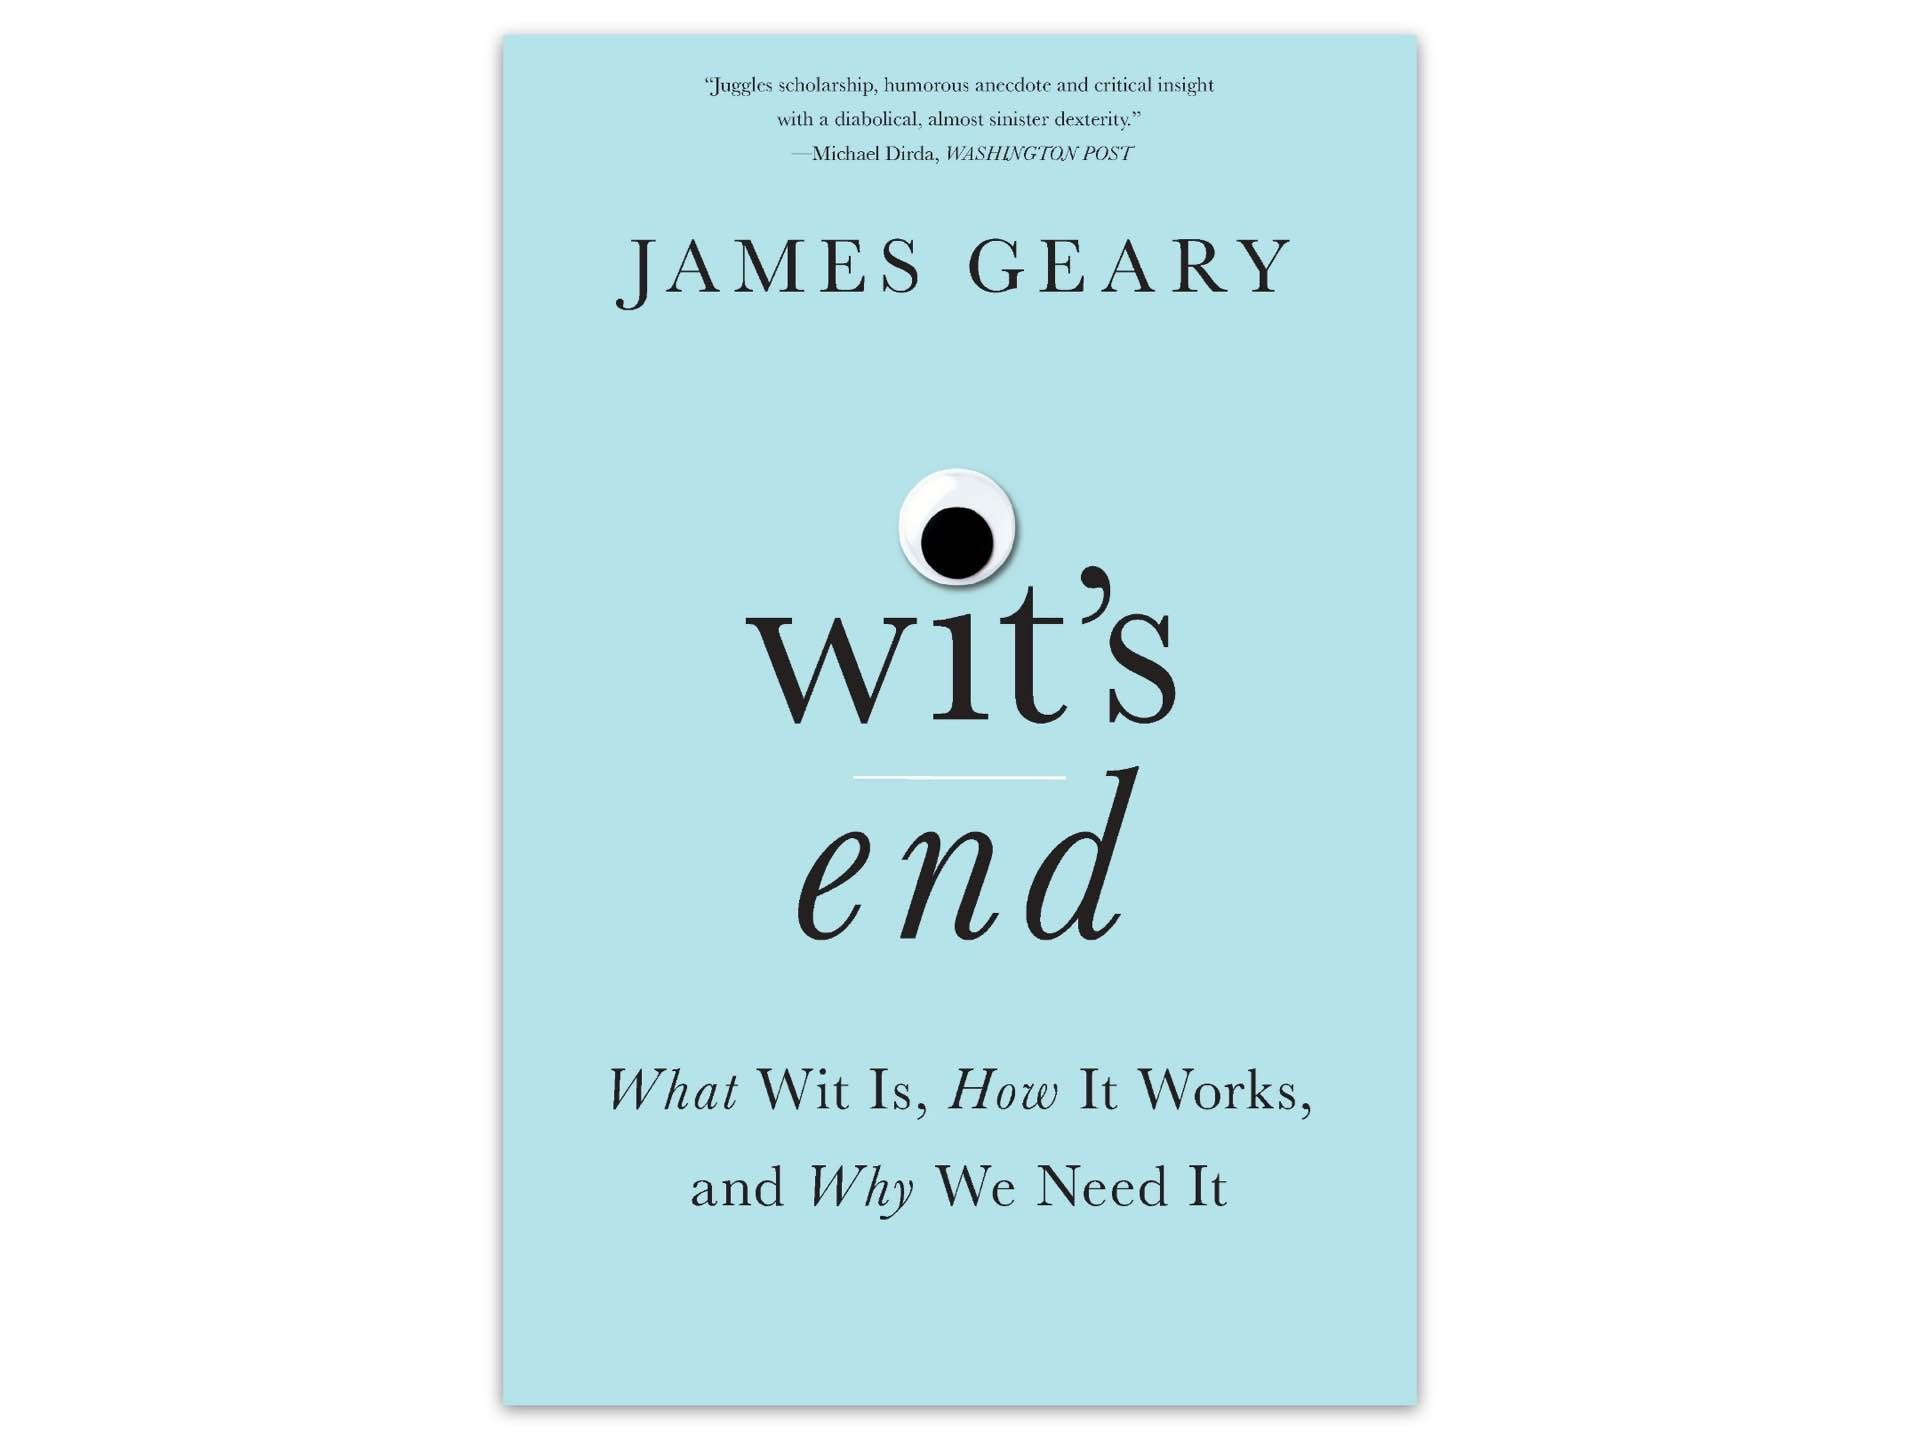 'Wit's End' by James Geary